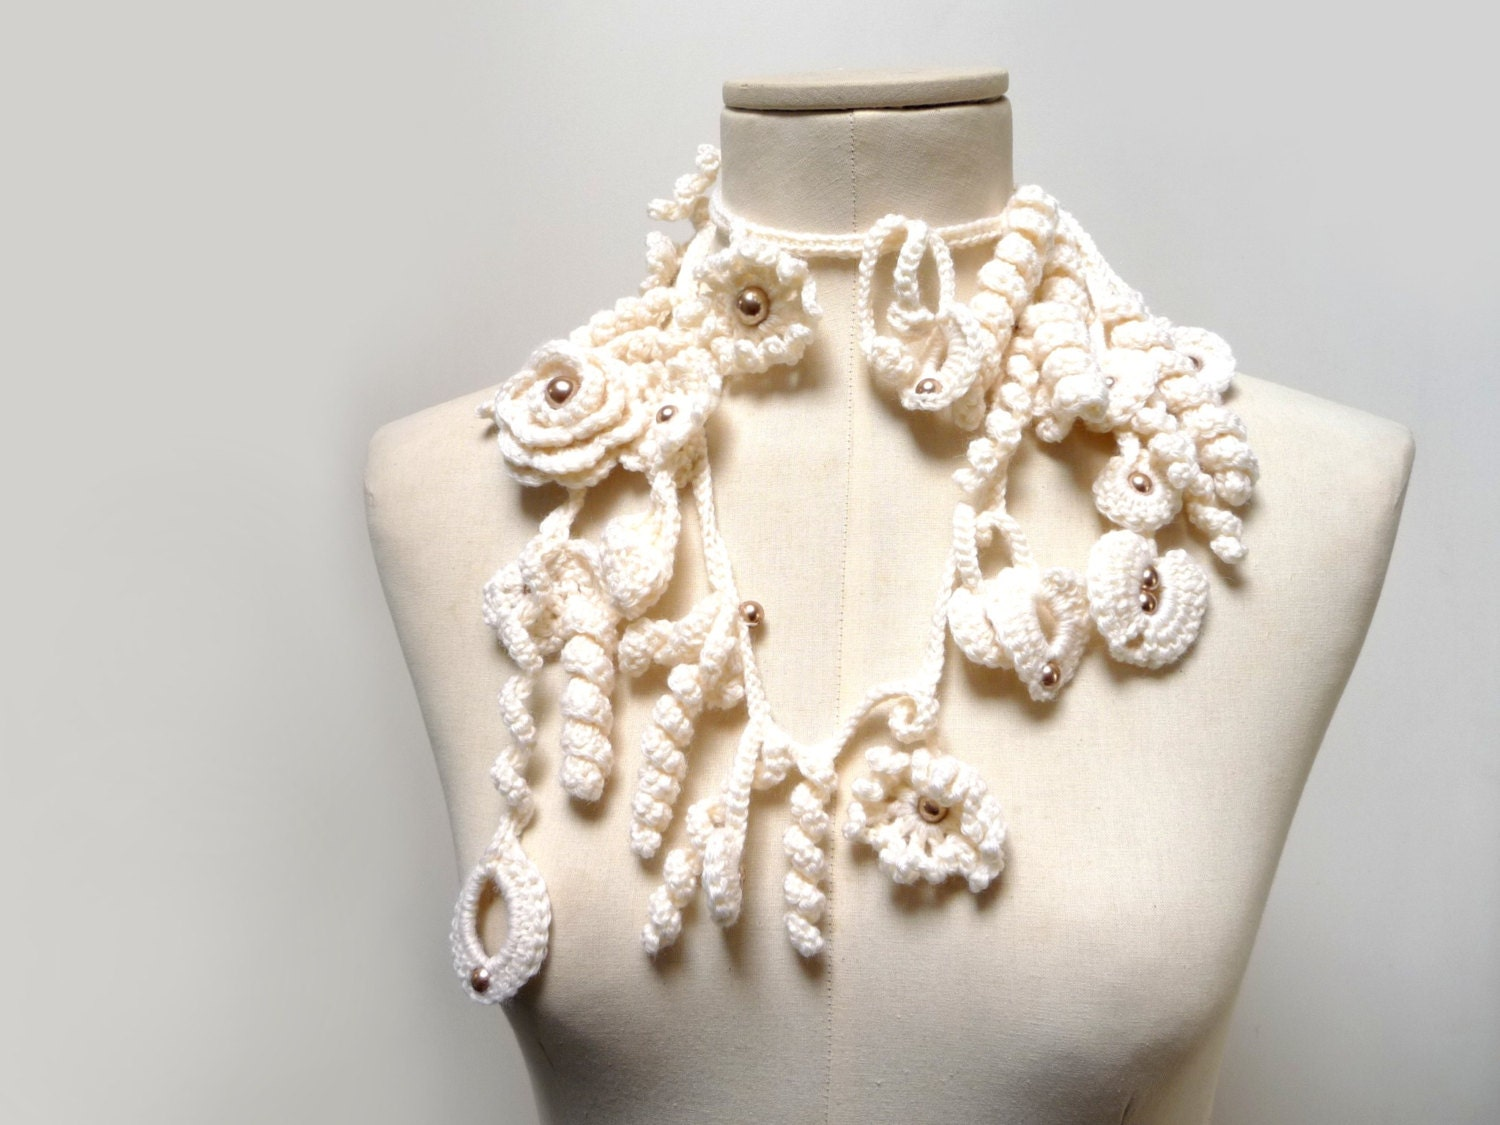 Crochet Lariat Necklace - Freeform Scarflette - Cream White Flowers and Leaves with Light Brown Glass Pearls - ZOE - ixela